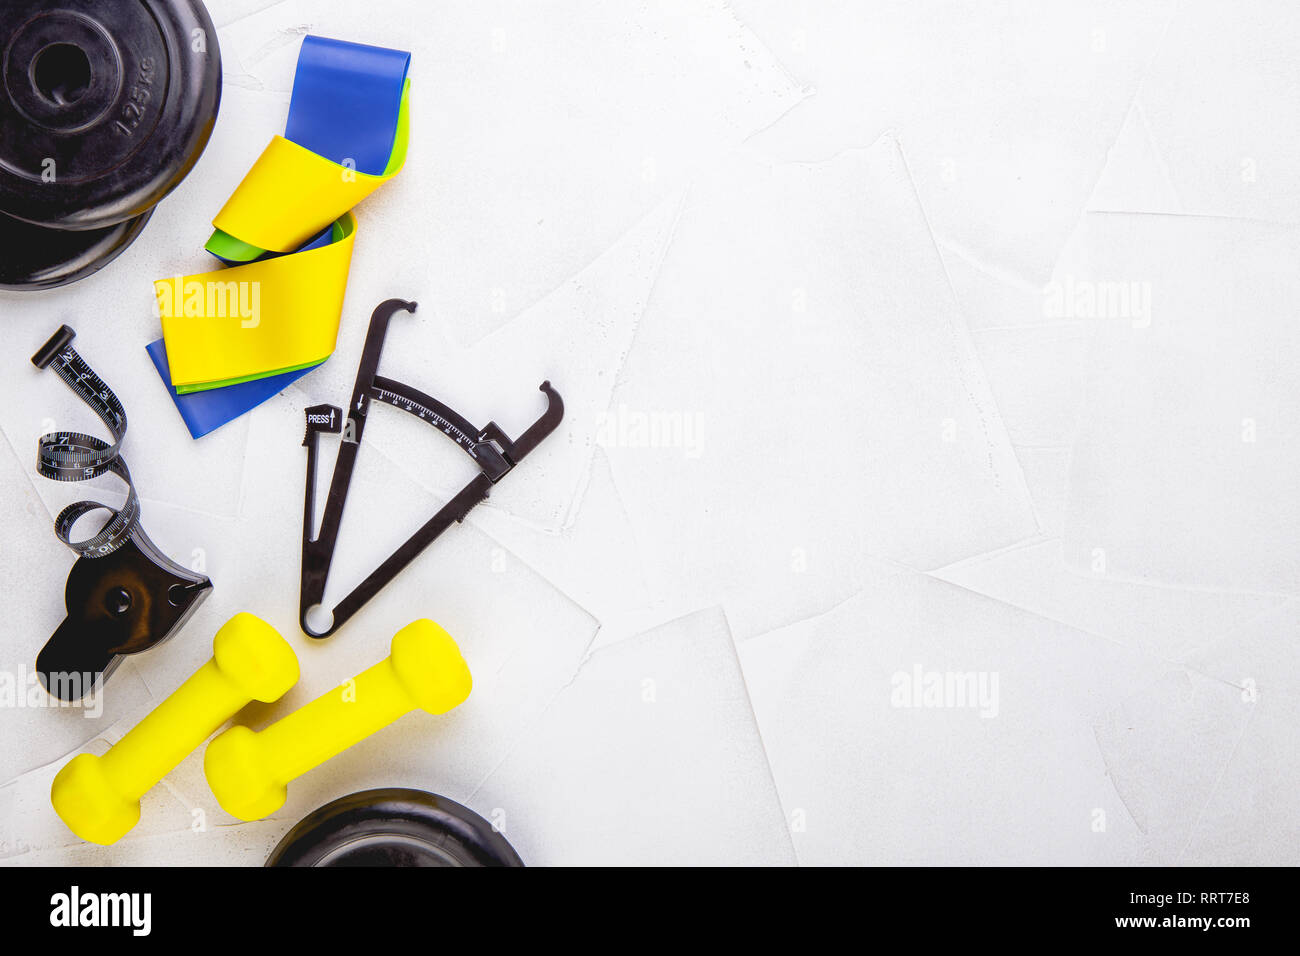 Top view image of dumbbells, colorful elastic gum expanders, calipers and measuring tape on a white textured background. Healthy lifestyle, Gym and wo - Stock Image